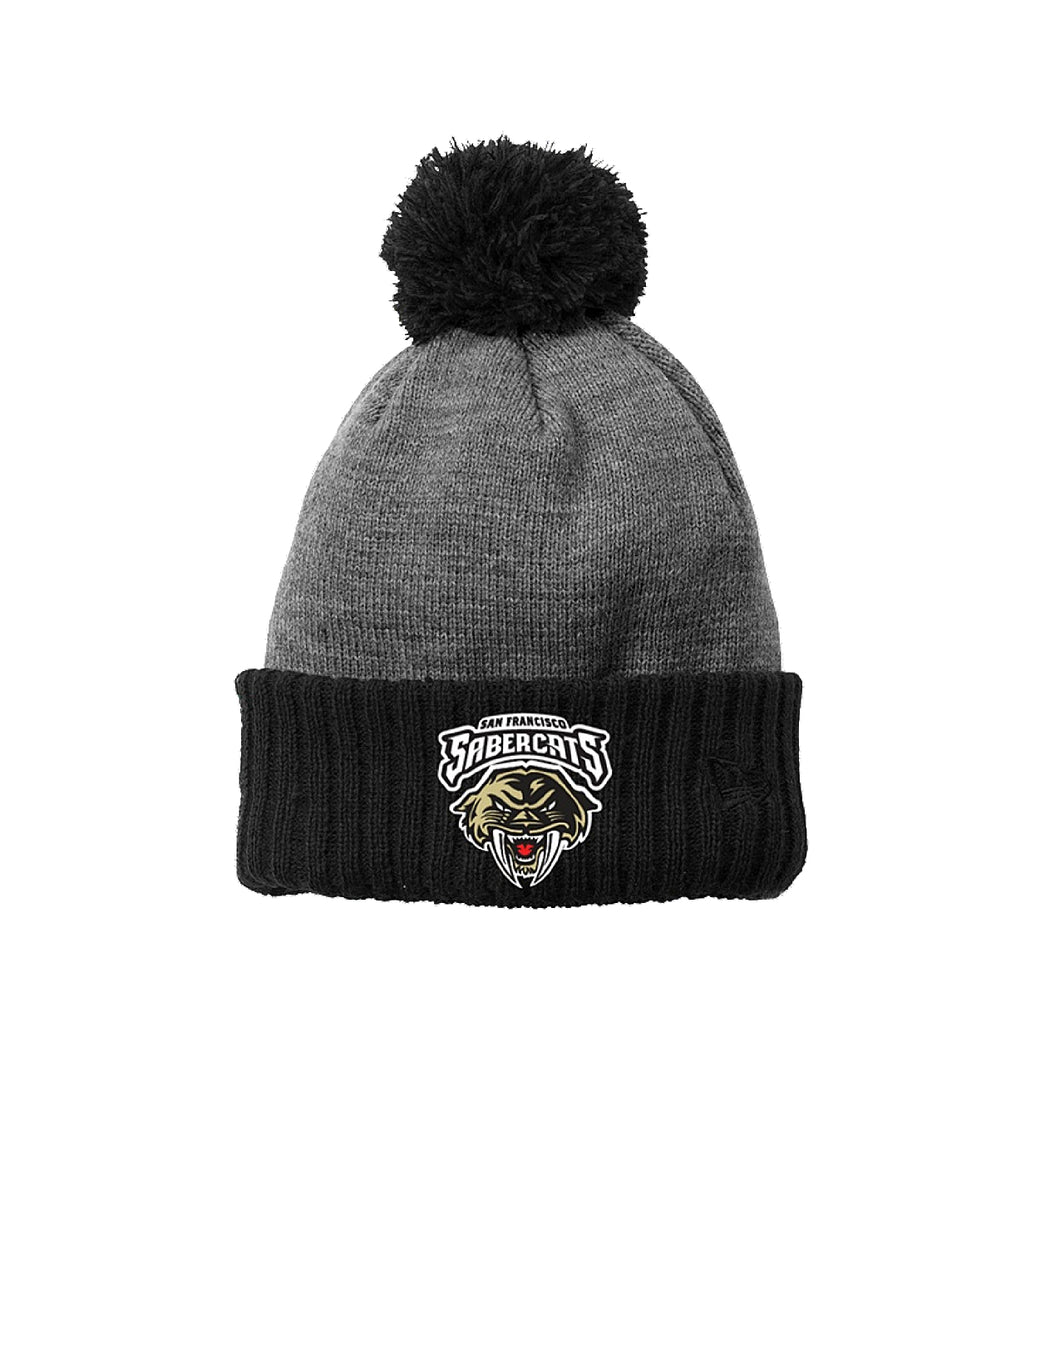 Sabercats New Era ® Colorblock Cuffed Beanie with Sabercats Logo (NE904)